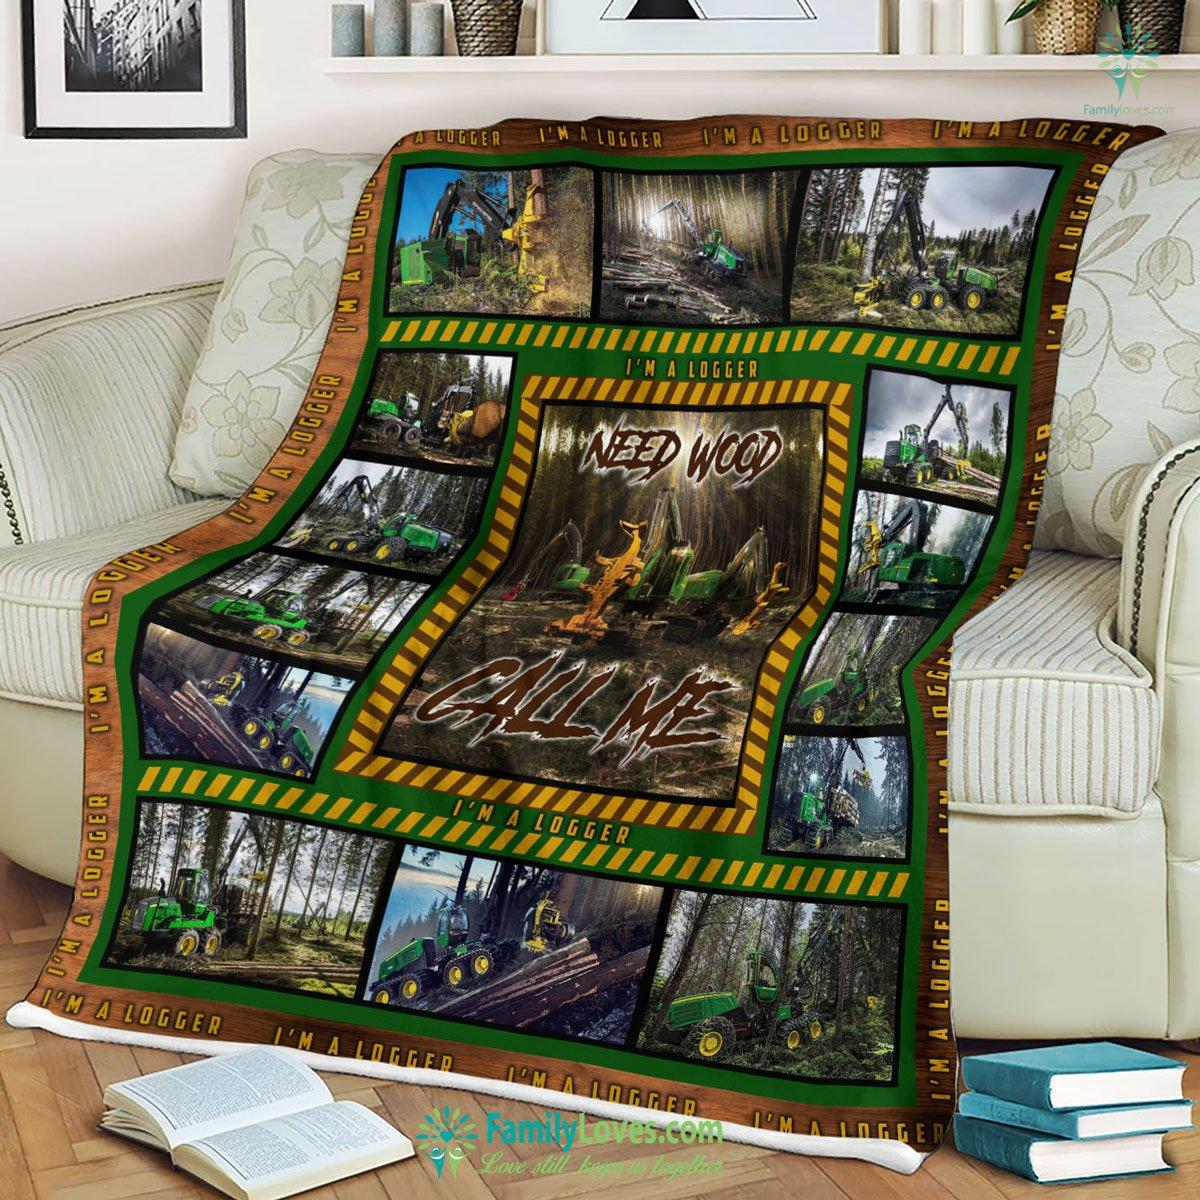 Jd Logging Like D Personalized Customized Design By Jersy.Us Blanket 16 Familyloves.com